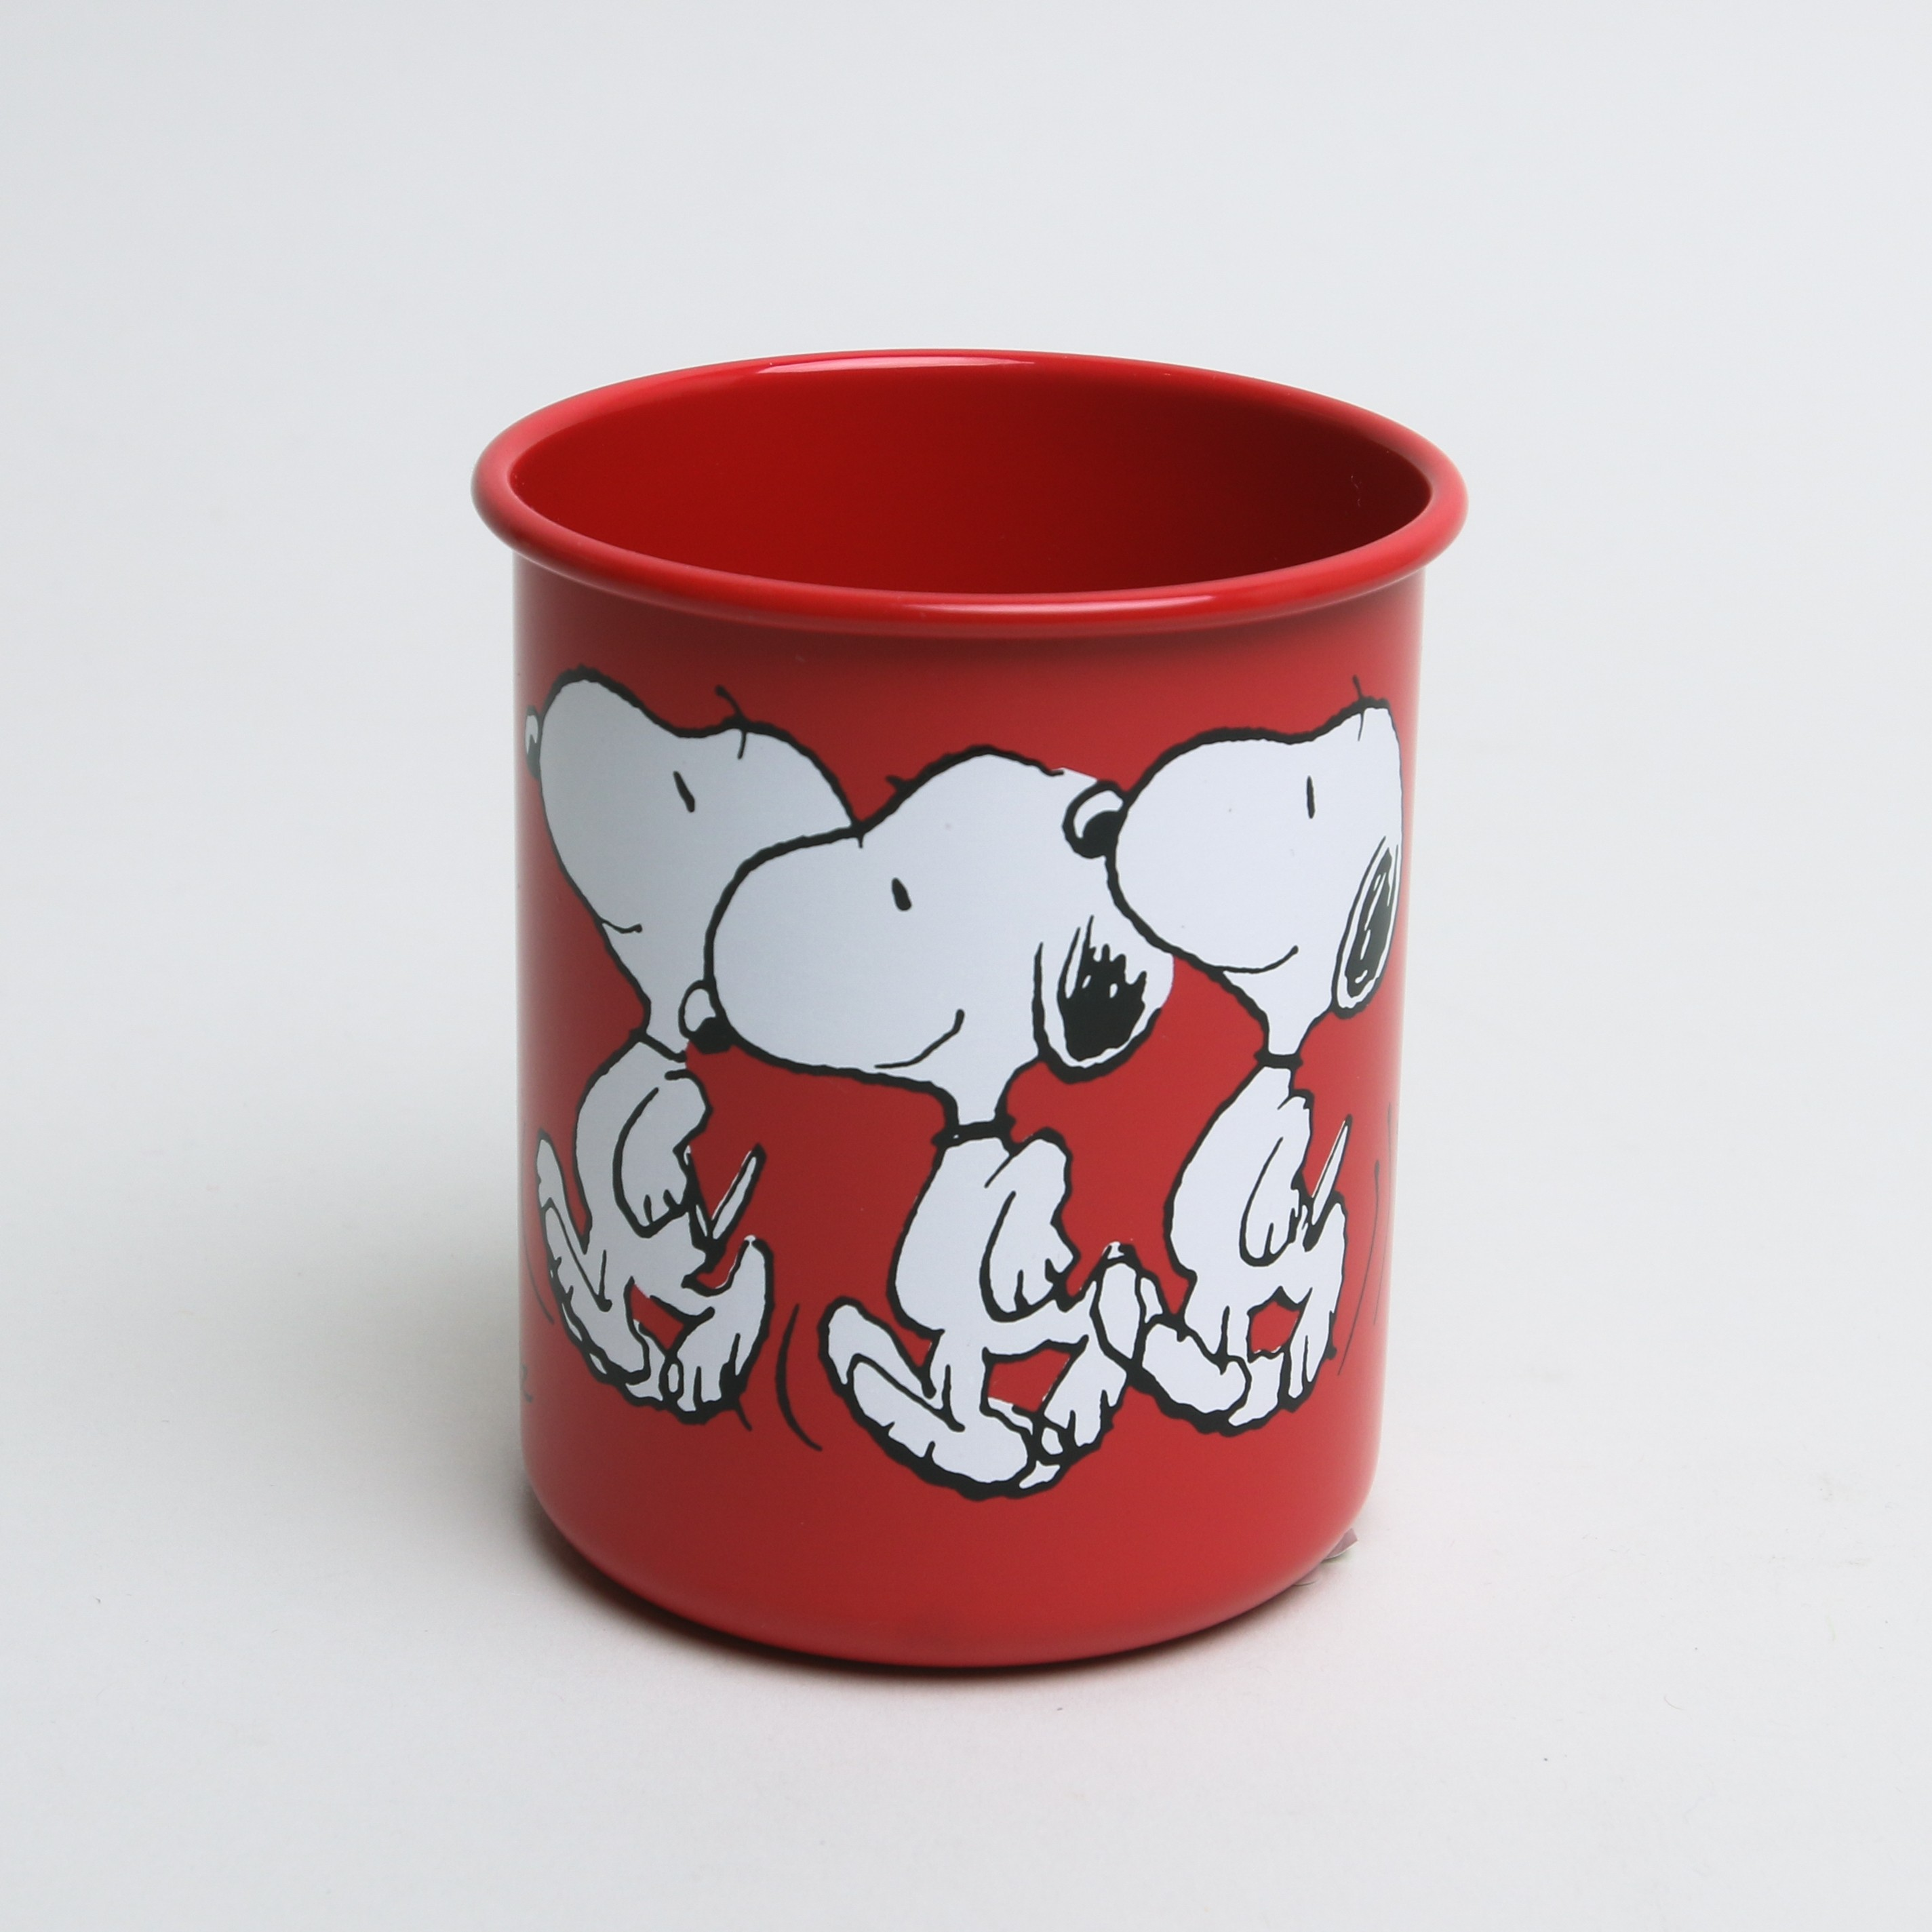 Snoopy Pen Holder Red